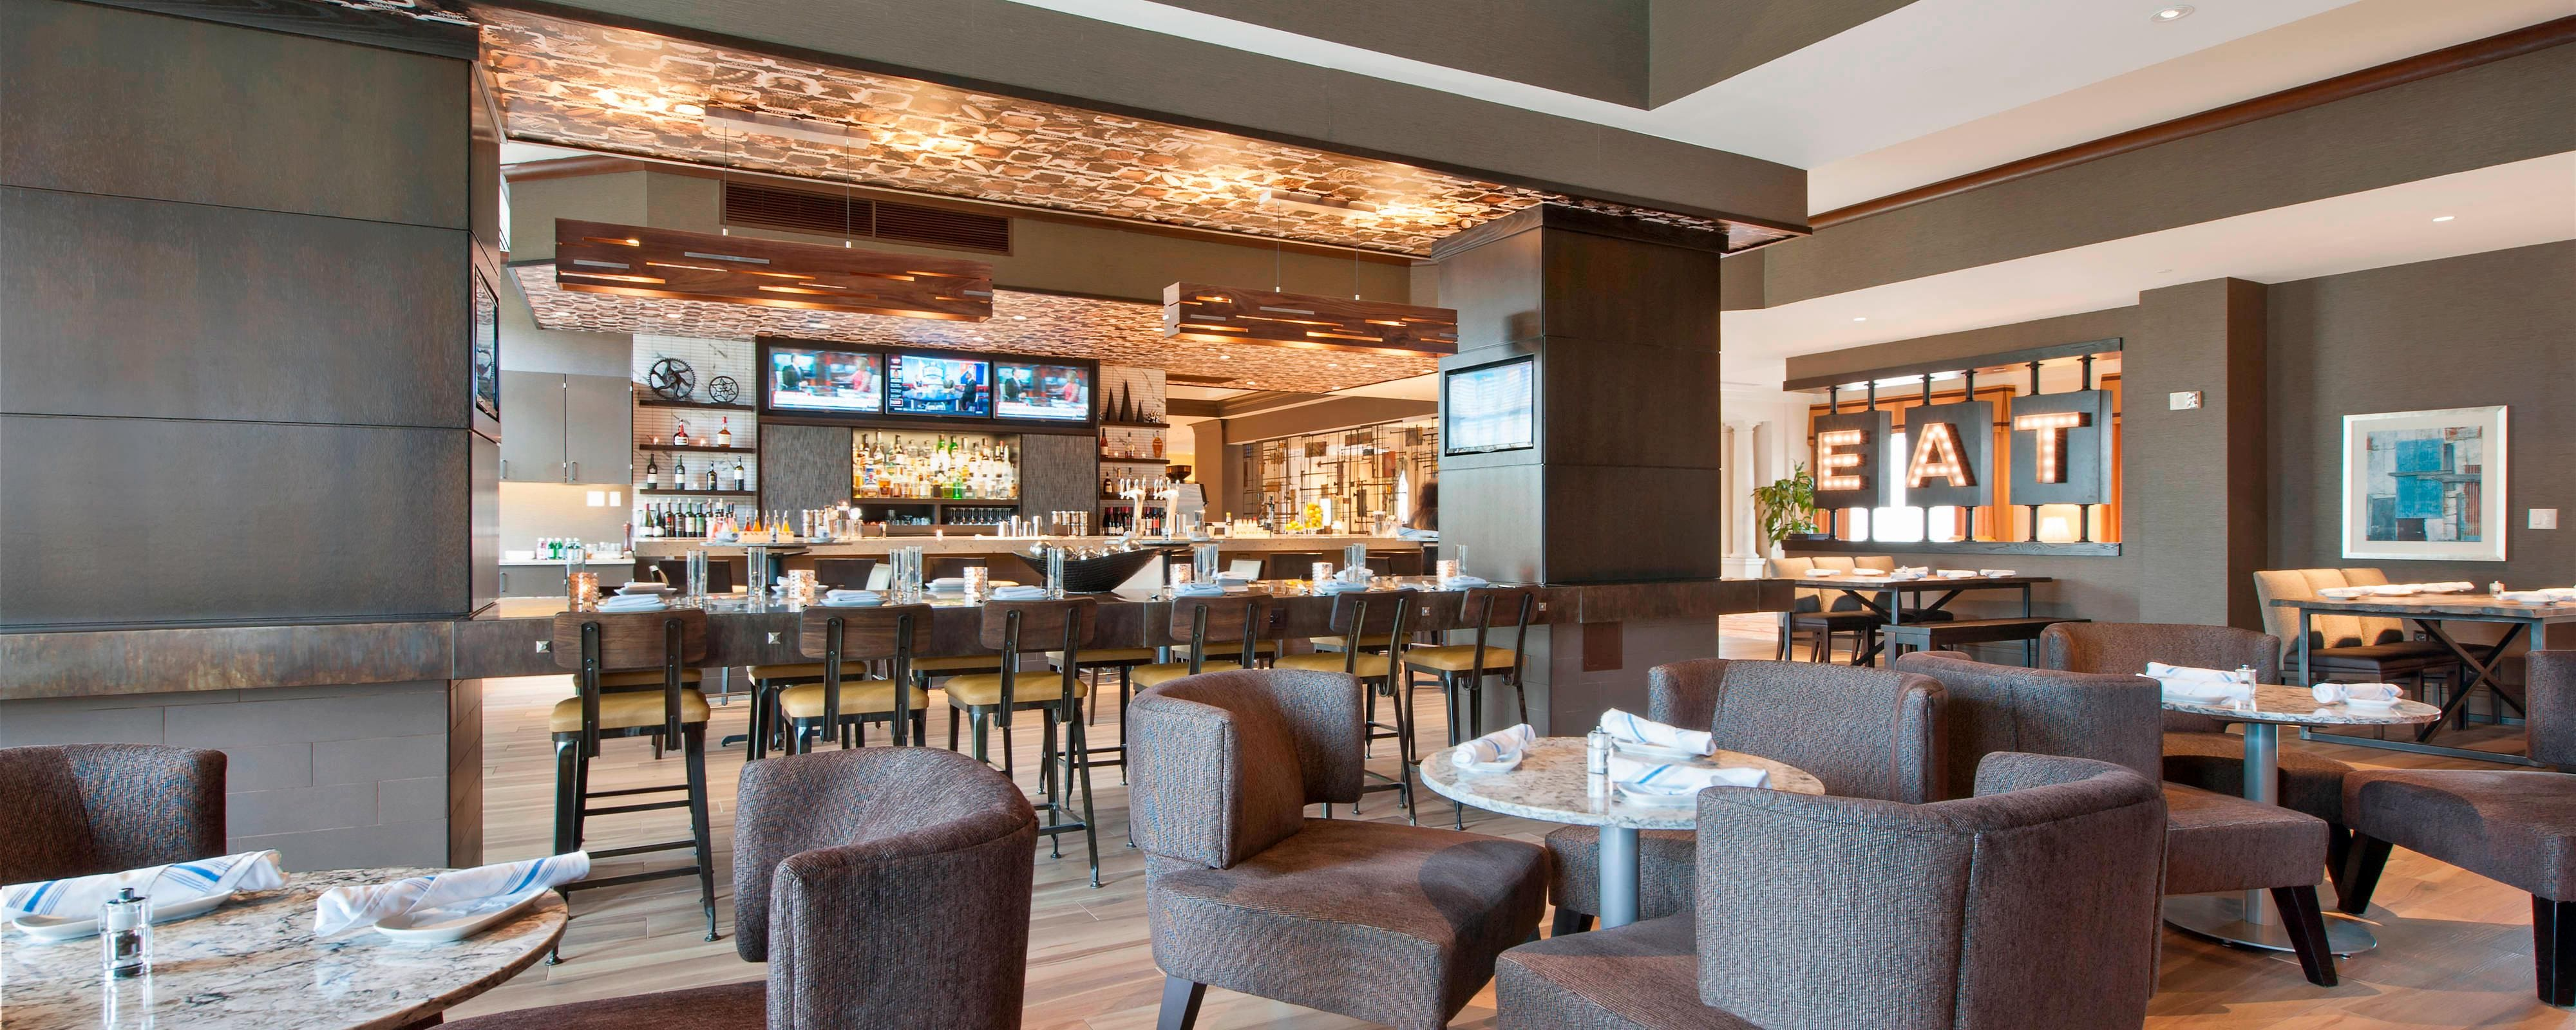 Restaurants Bars In Bridgewater Nj Bridgewater Marriott